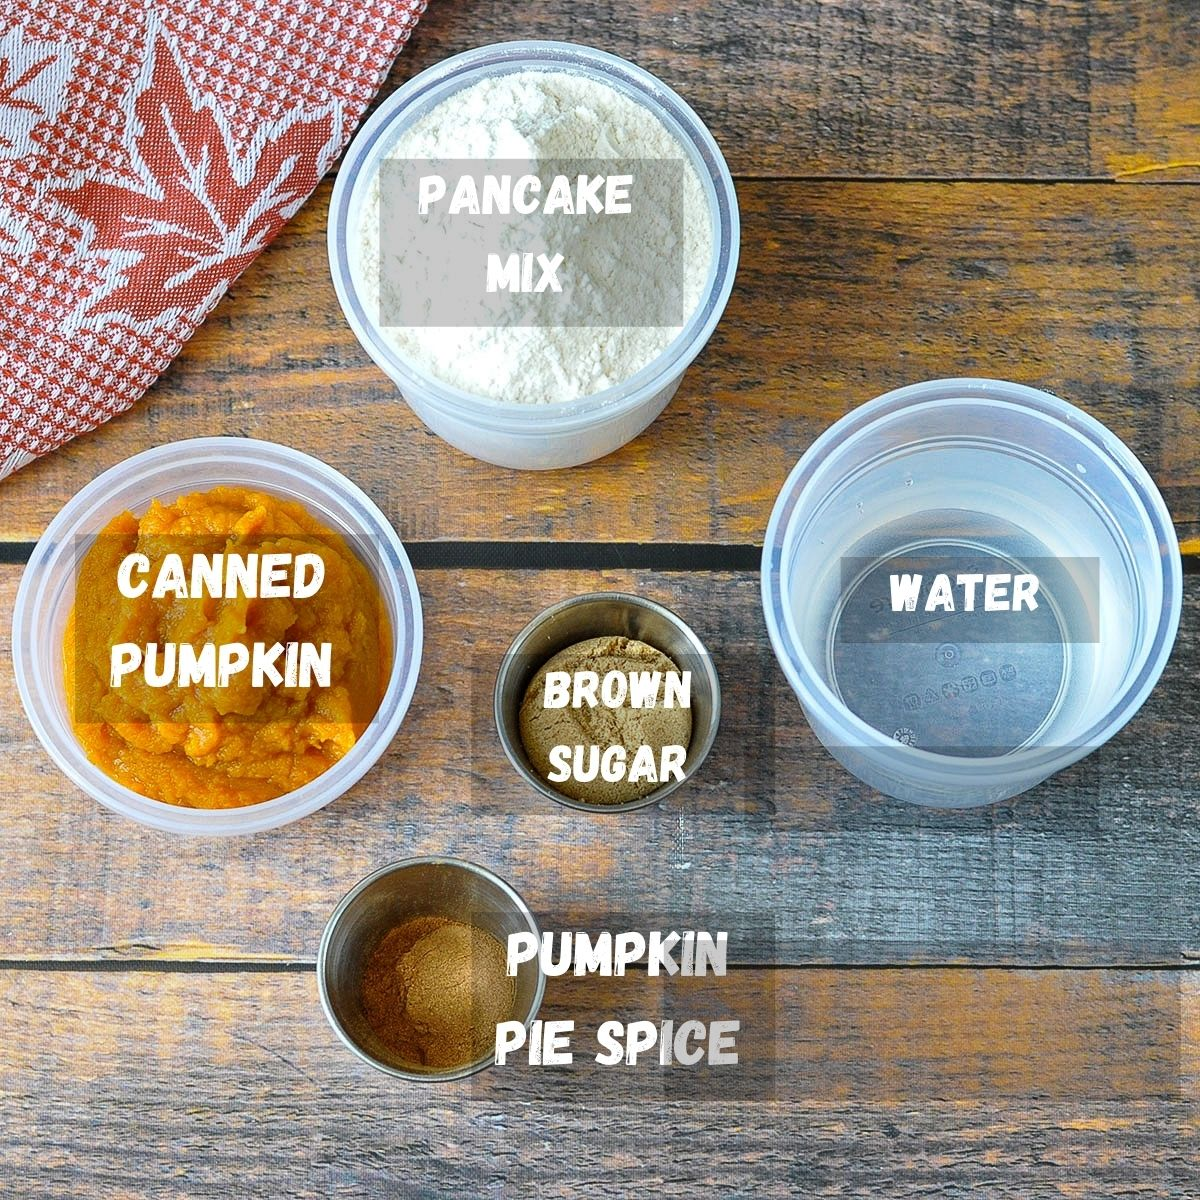 ingredients measured out and labeled for pumpkin pancakes